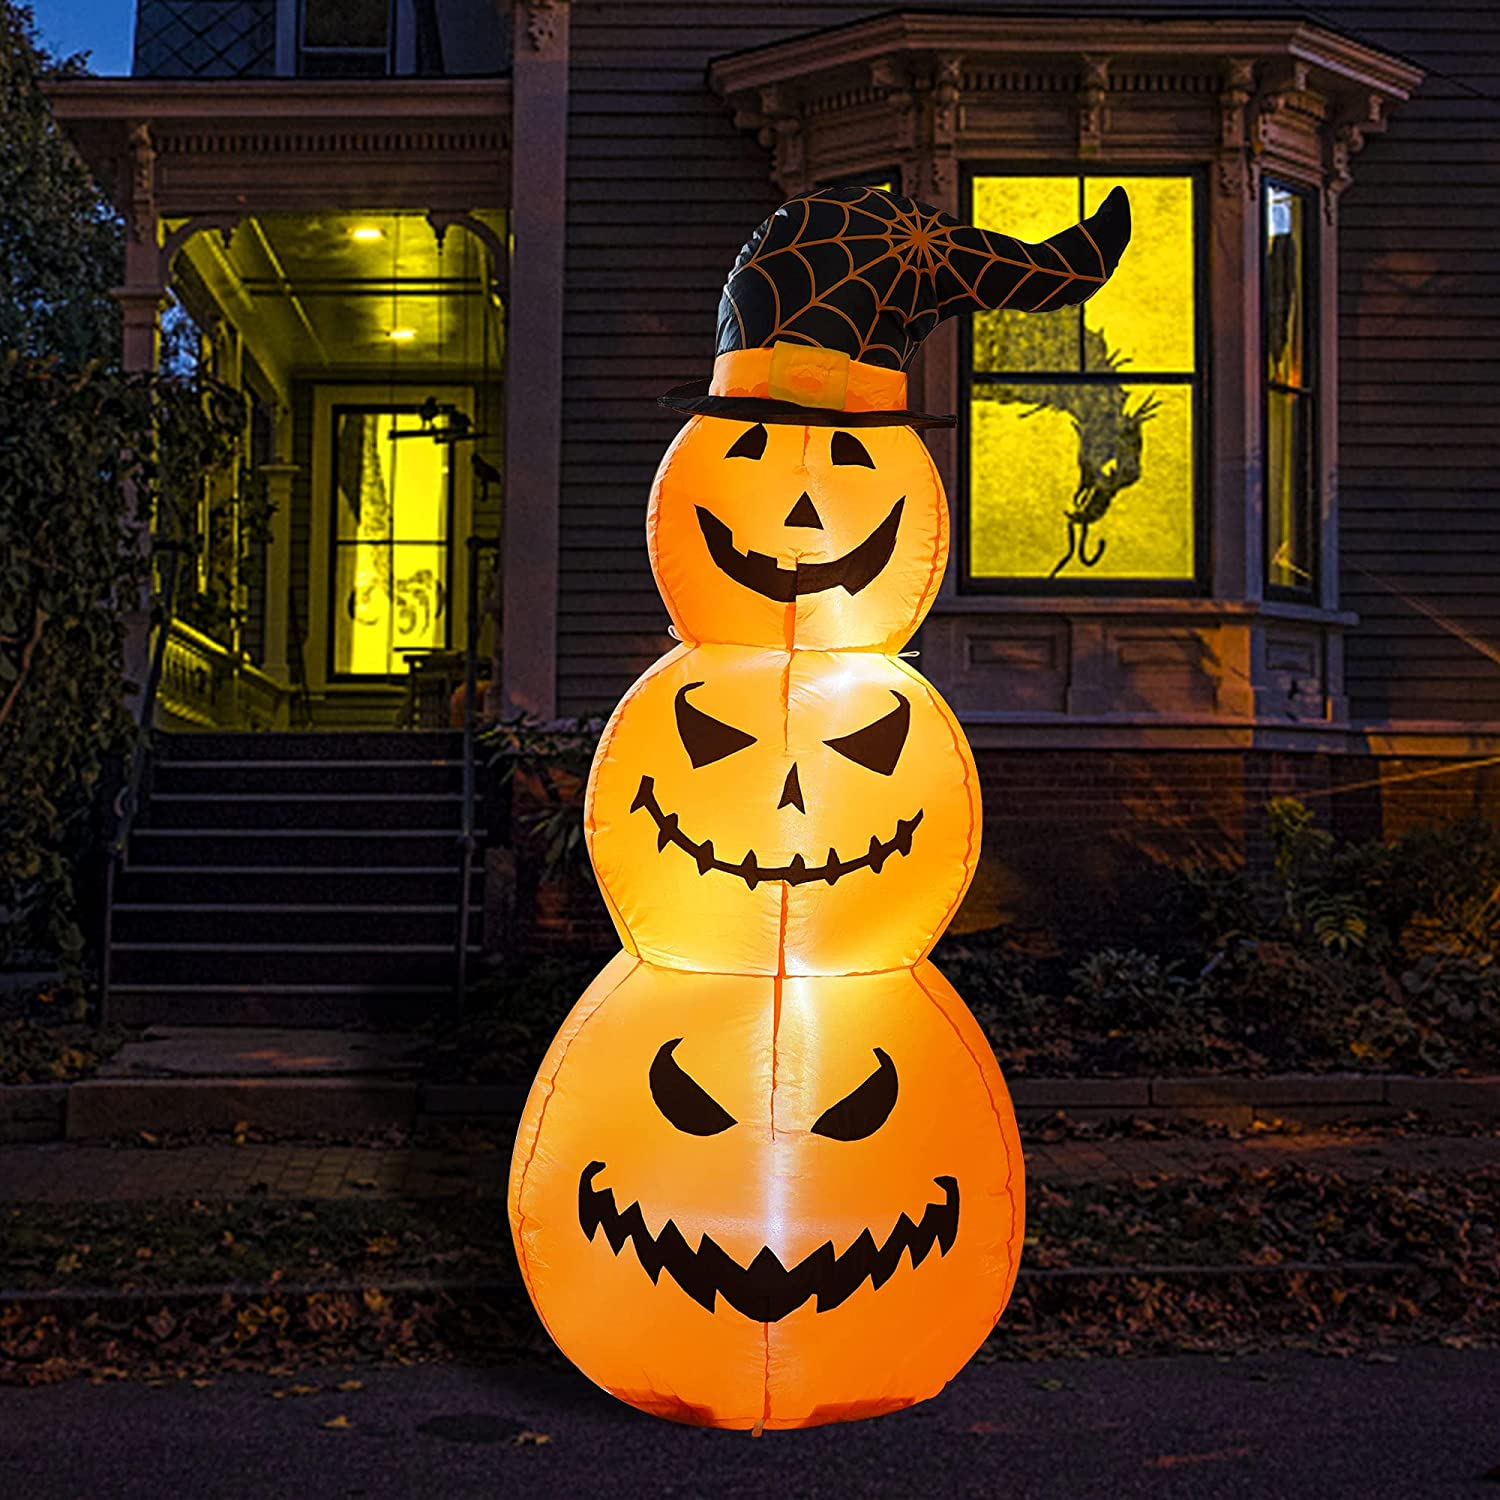 Hourleey 5 FT Halloween Inflatables Outdoor Stacked Pumpkins with Witches Hat, Halloween Blow Up Yard Decorations with Built-in LED Lights for Indoor Outdoor Party Garden Lawn Holiday Decor